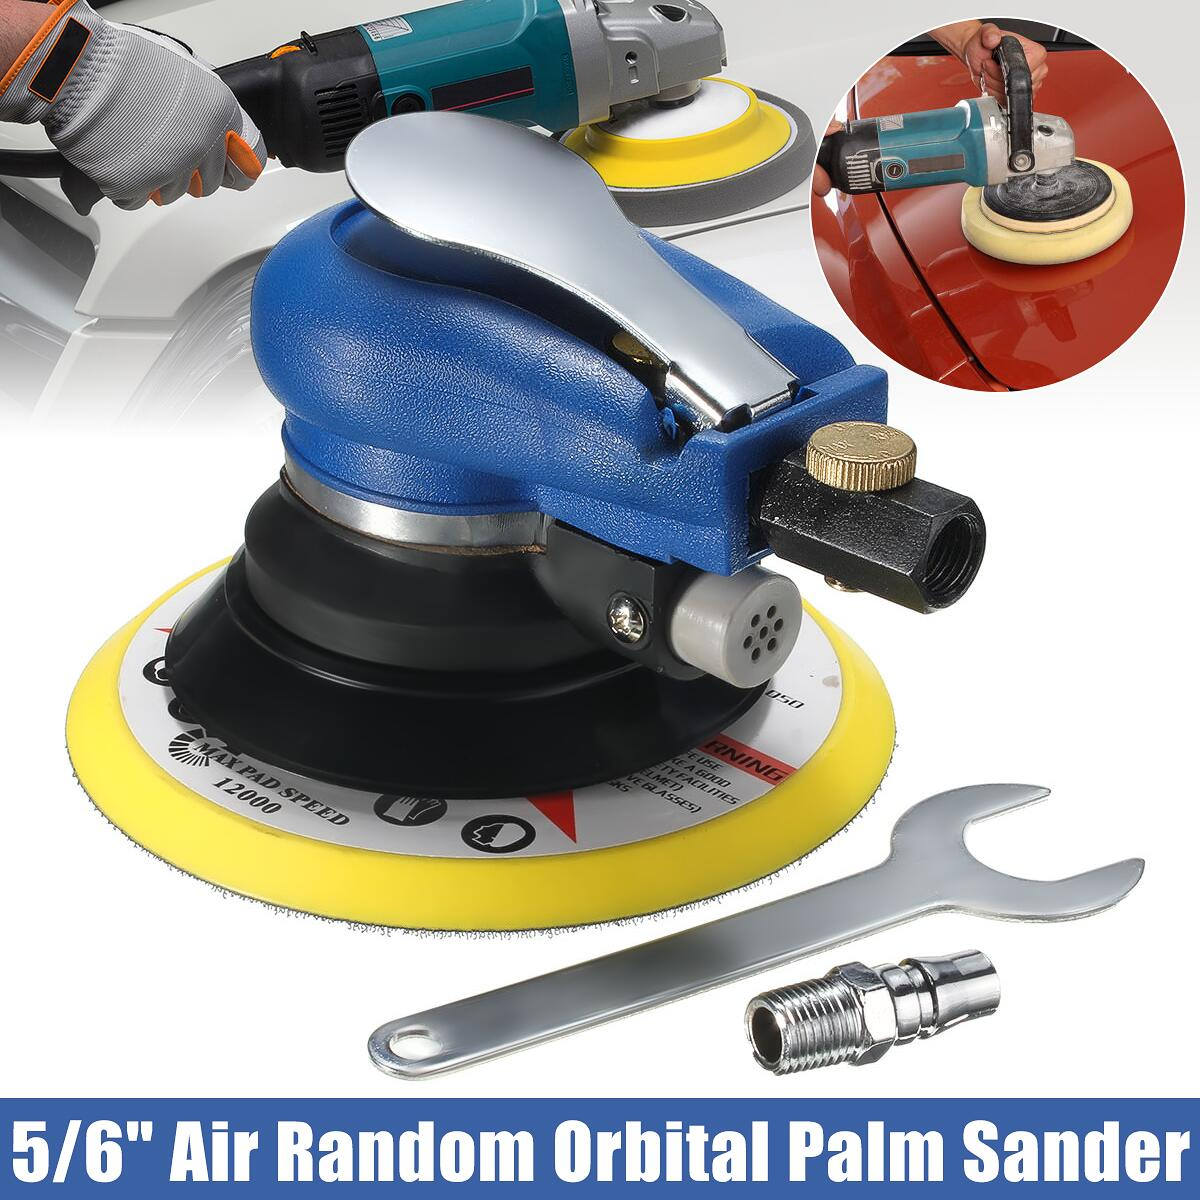 6 Inch Air Palms Orbital Sander Random For Palms Sander 150mm Dualable Action Auto Body Orbit Da Sanding Hand Sanding Pneumatic Lustrous Surface Polishers